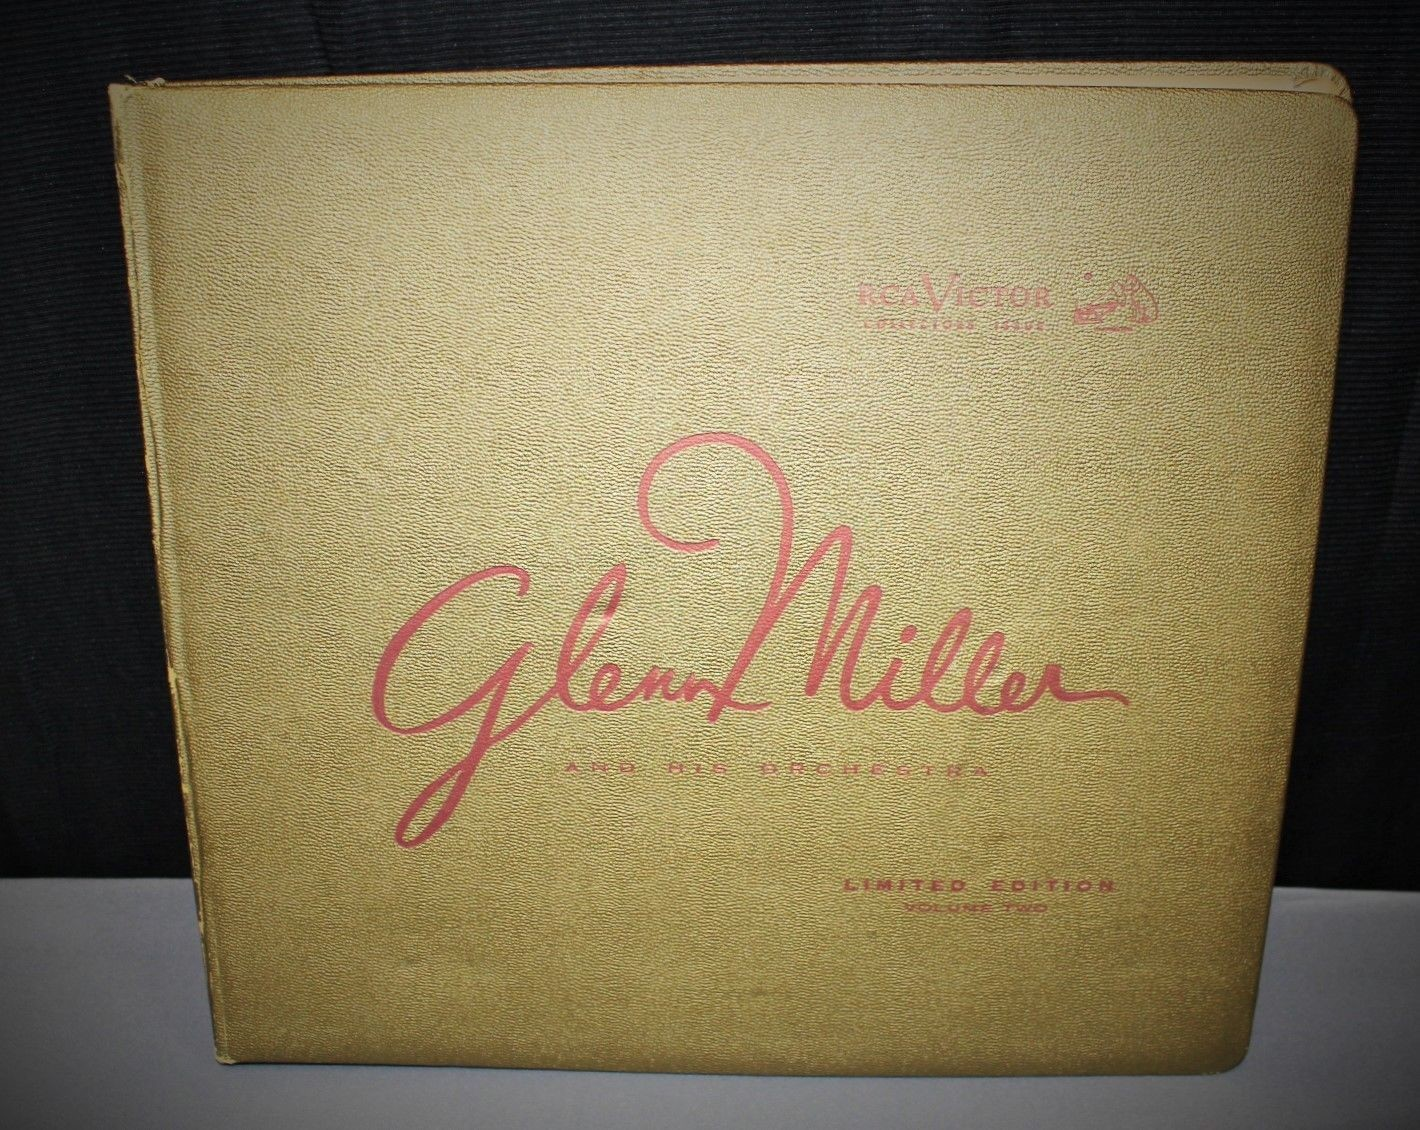 Glenn Miller Limited Edition BB 416 RCA 33 RPM Victor Records Collectors Album, Complete